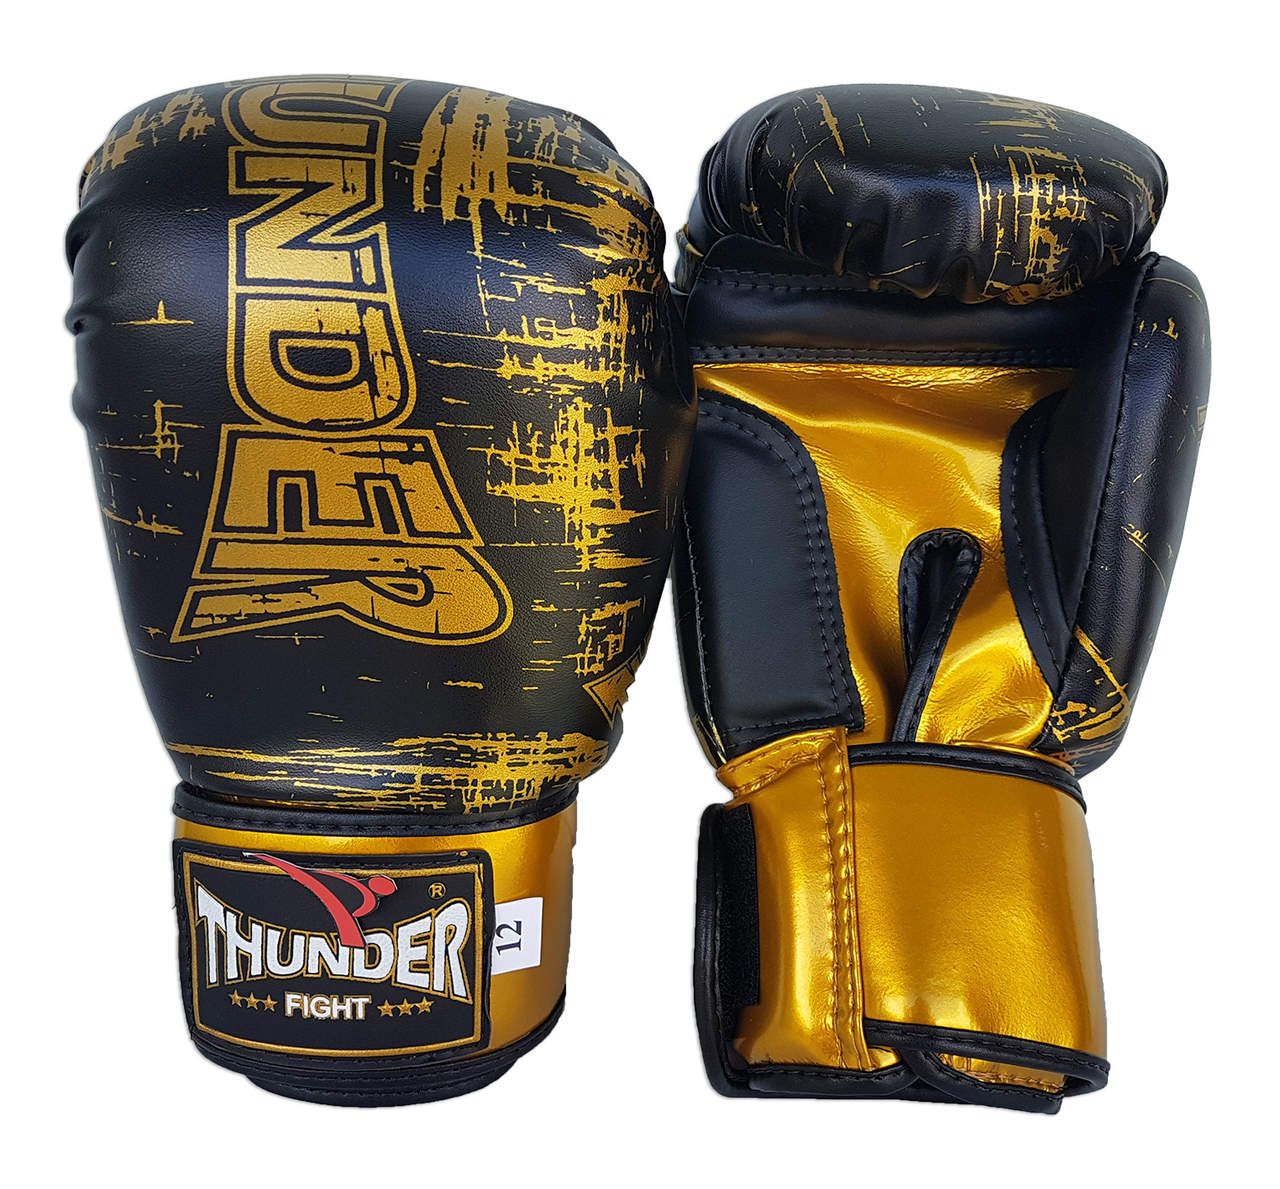 Luva de Boxe / Muay Thai 14oz - Preto Riscado - Thunder Fight  - PRALUTA SHOP